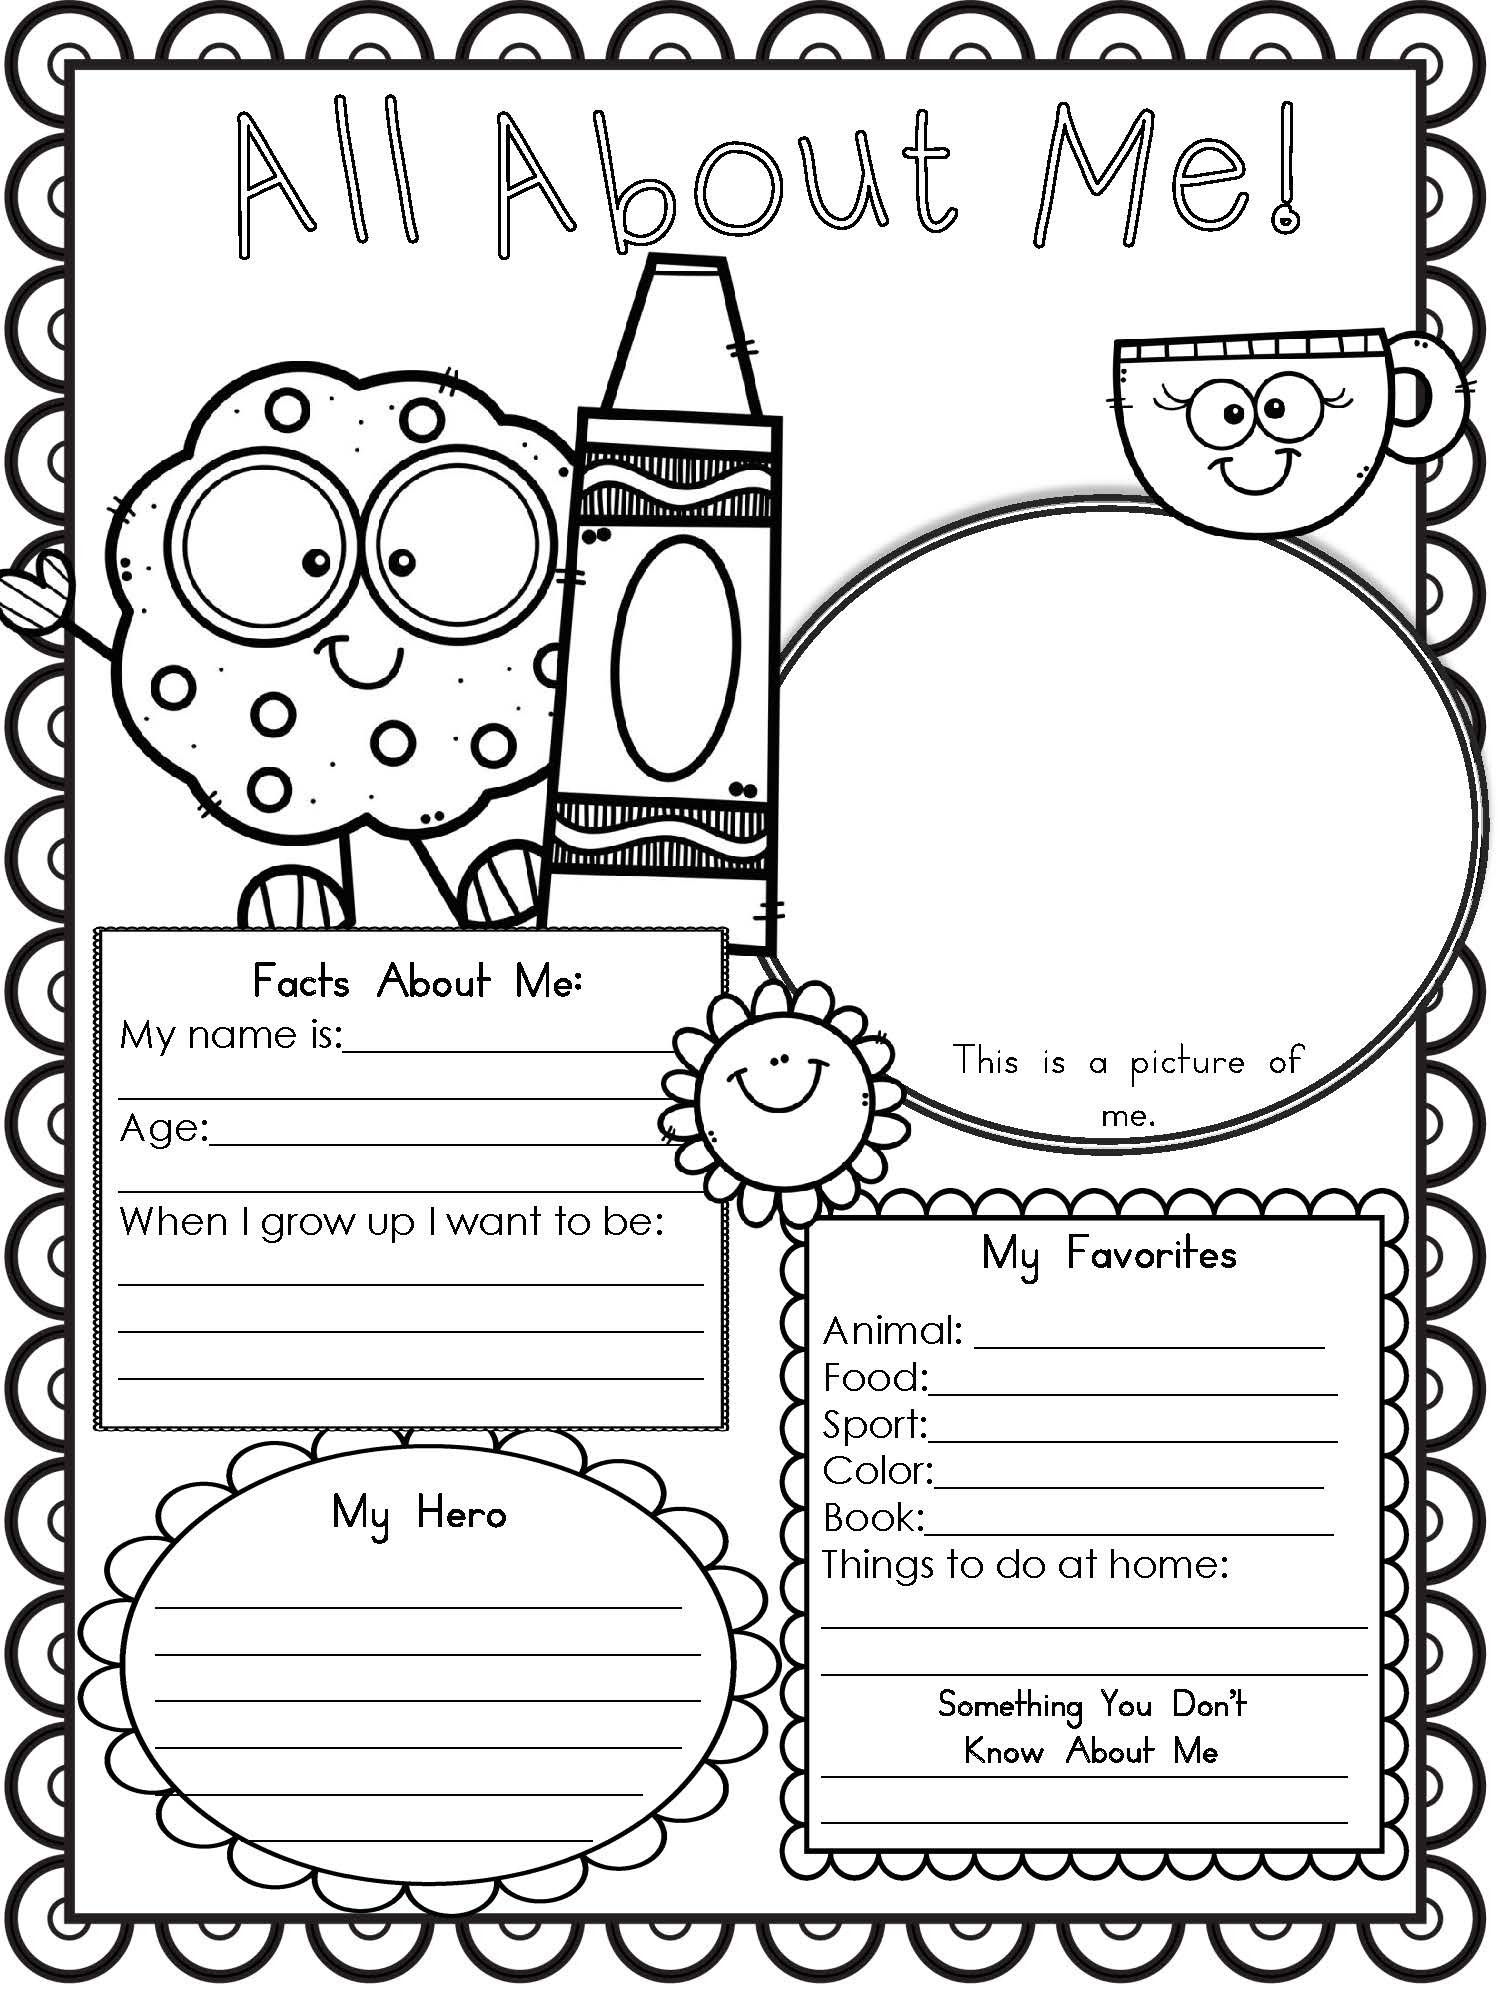 Free Printable All About Me Worksheet Modern Homeschool